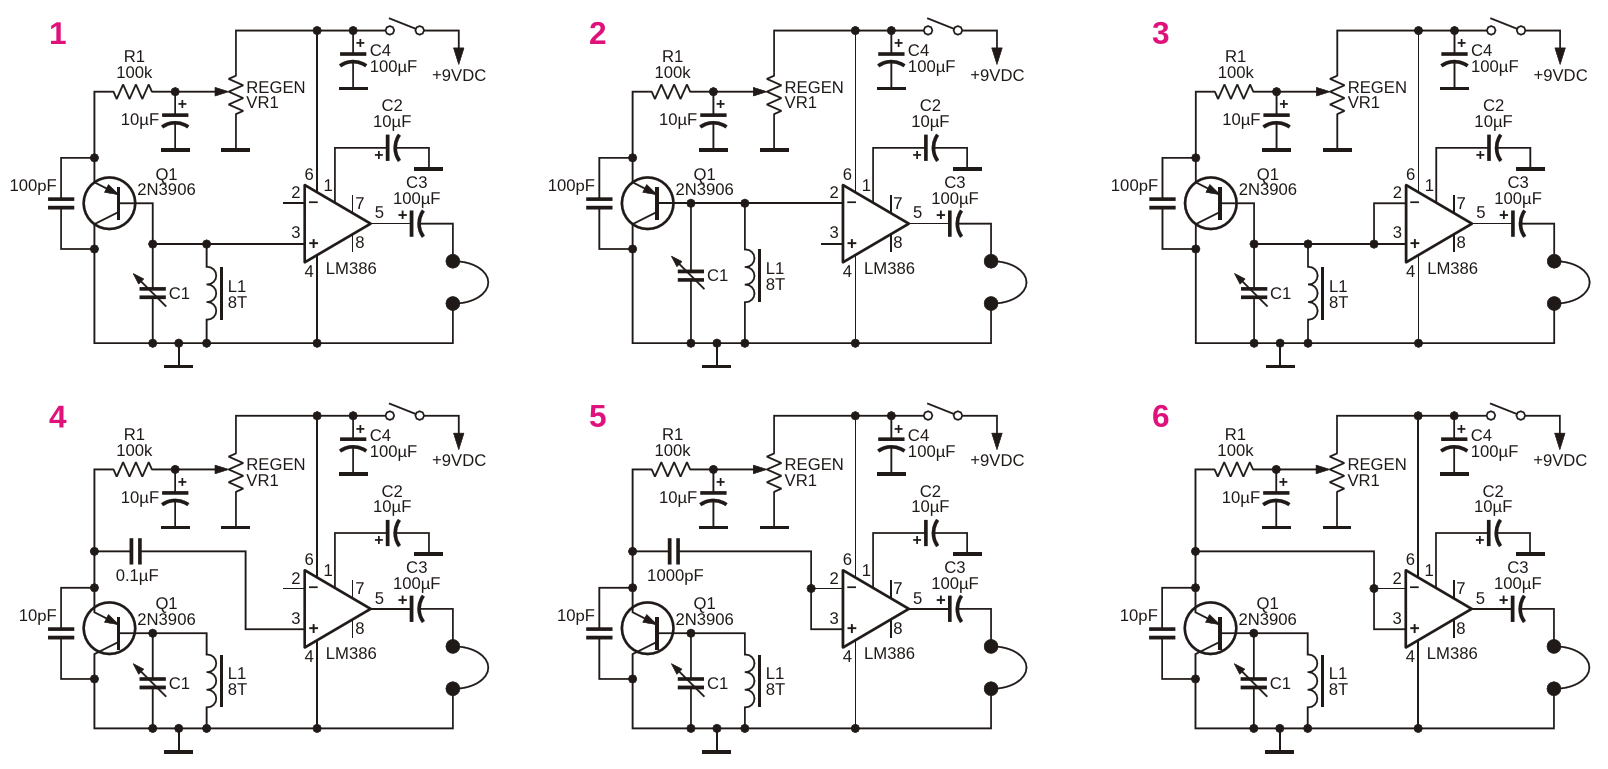 Create LM386 shortwave regenerative receivers using high gain and RF envelope detector modes